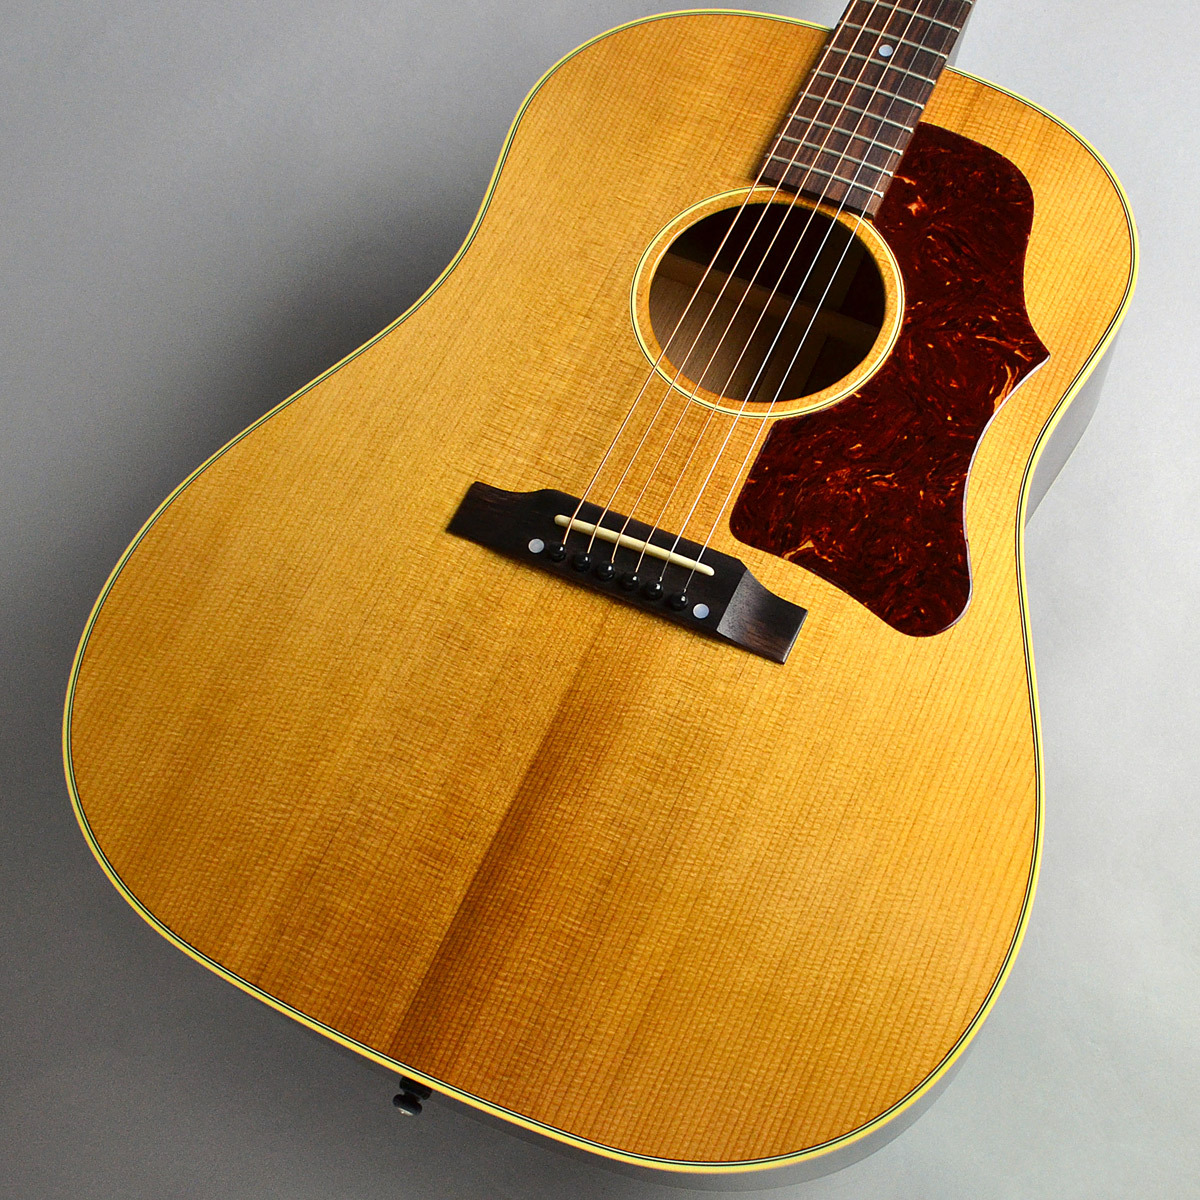 Gibson Custom Shop 1959 J50 Thermally Aged Sitka Top アコースティックギター 【ギブソン】【新宿PePe店】